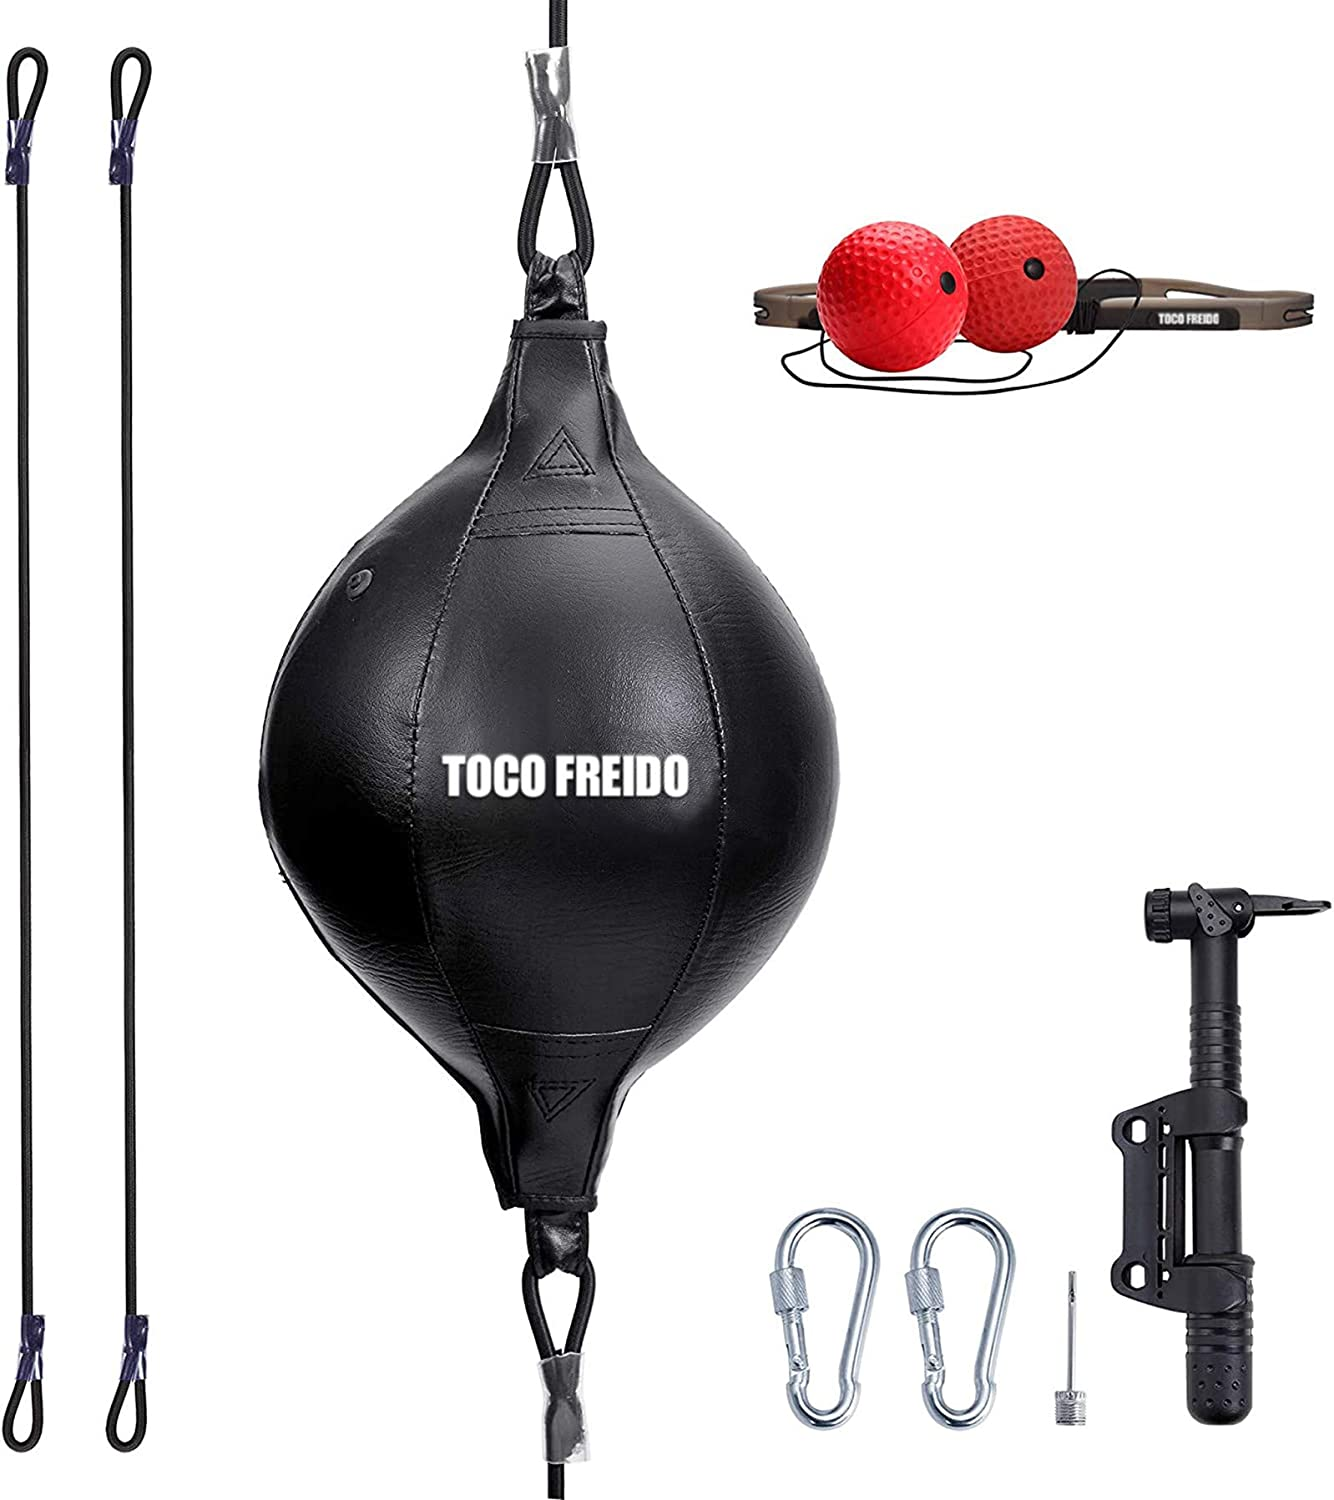 TOCO FREIDO Double End Punching Ball with 2 Boxing Reflex Ball, Pump, Headband, Perfect for Gym MMA Boxing Sports Punch Bag Adult Kids Men Women : Sports & Outdoors